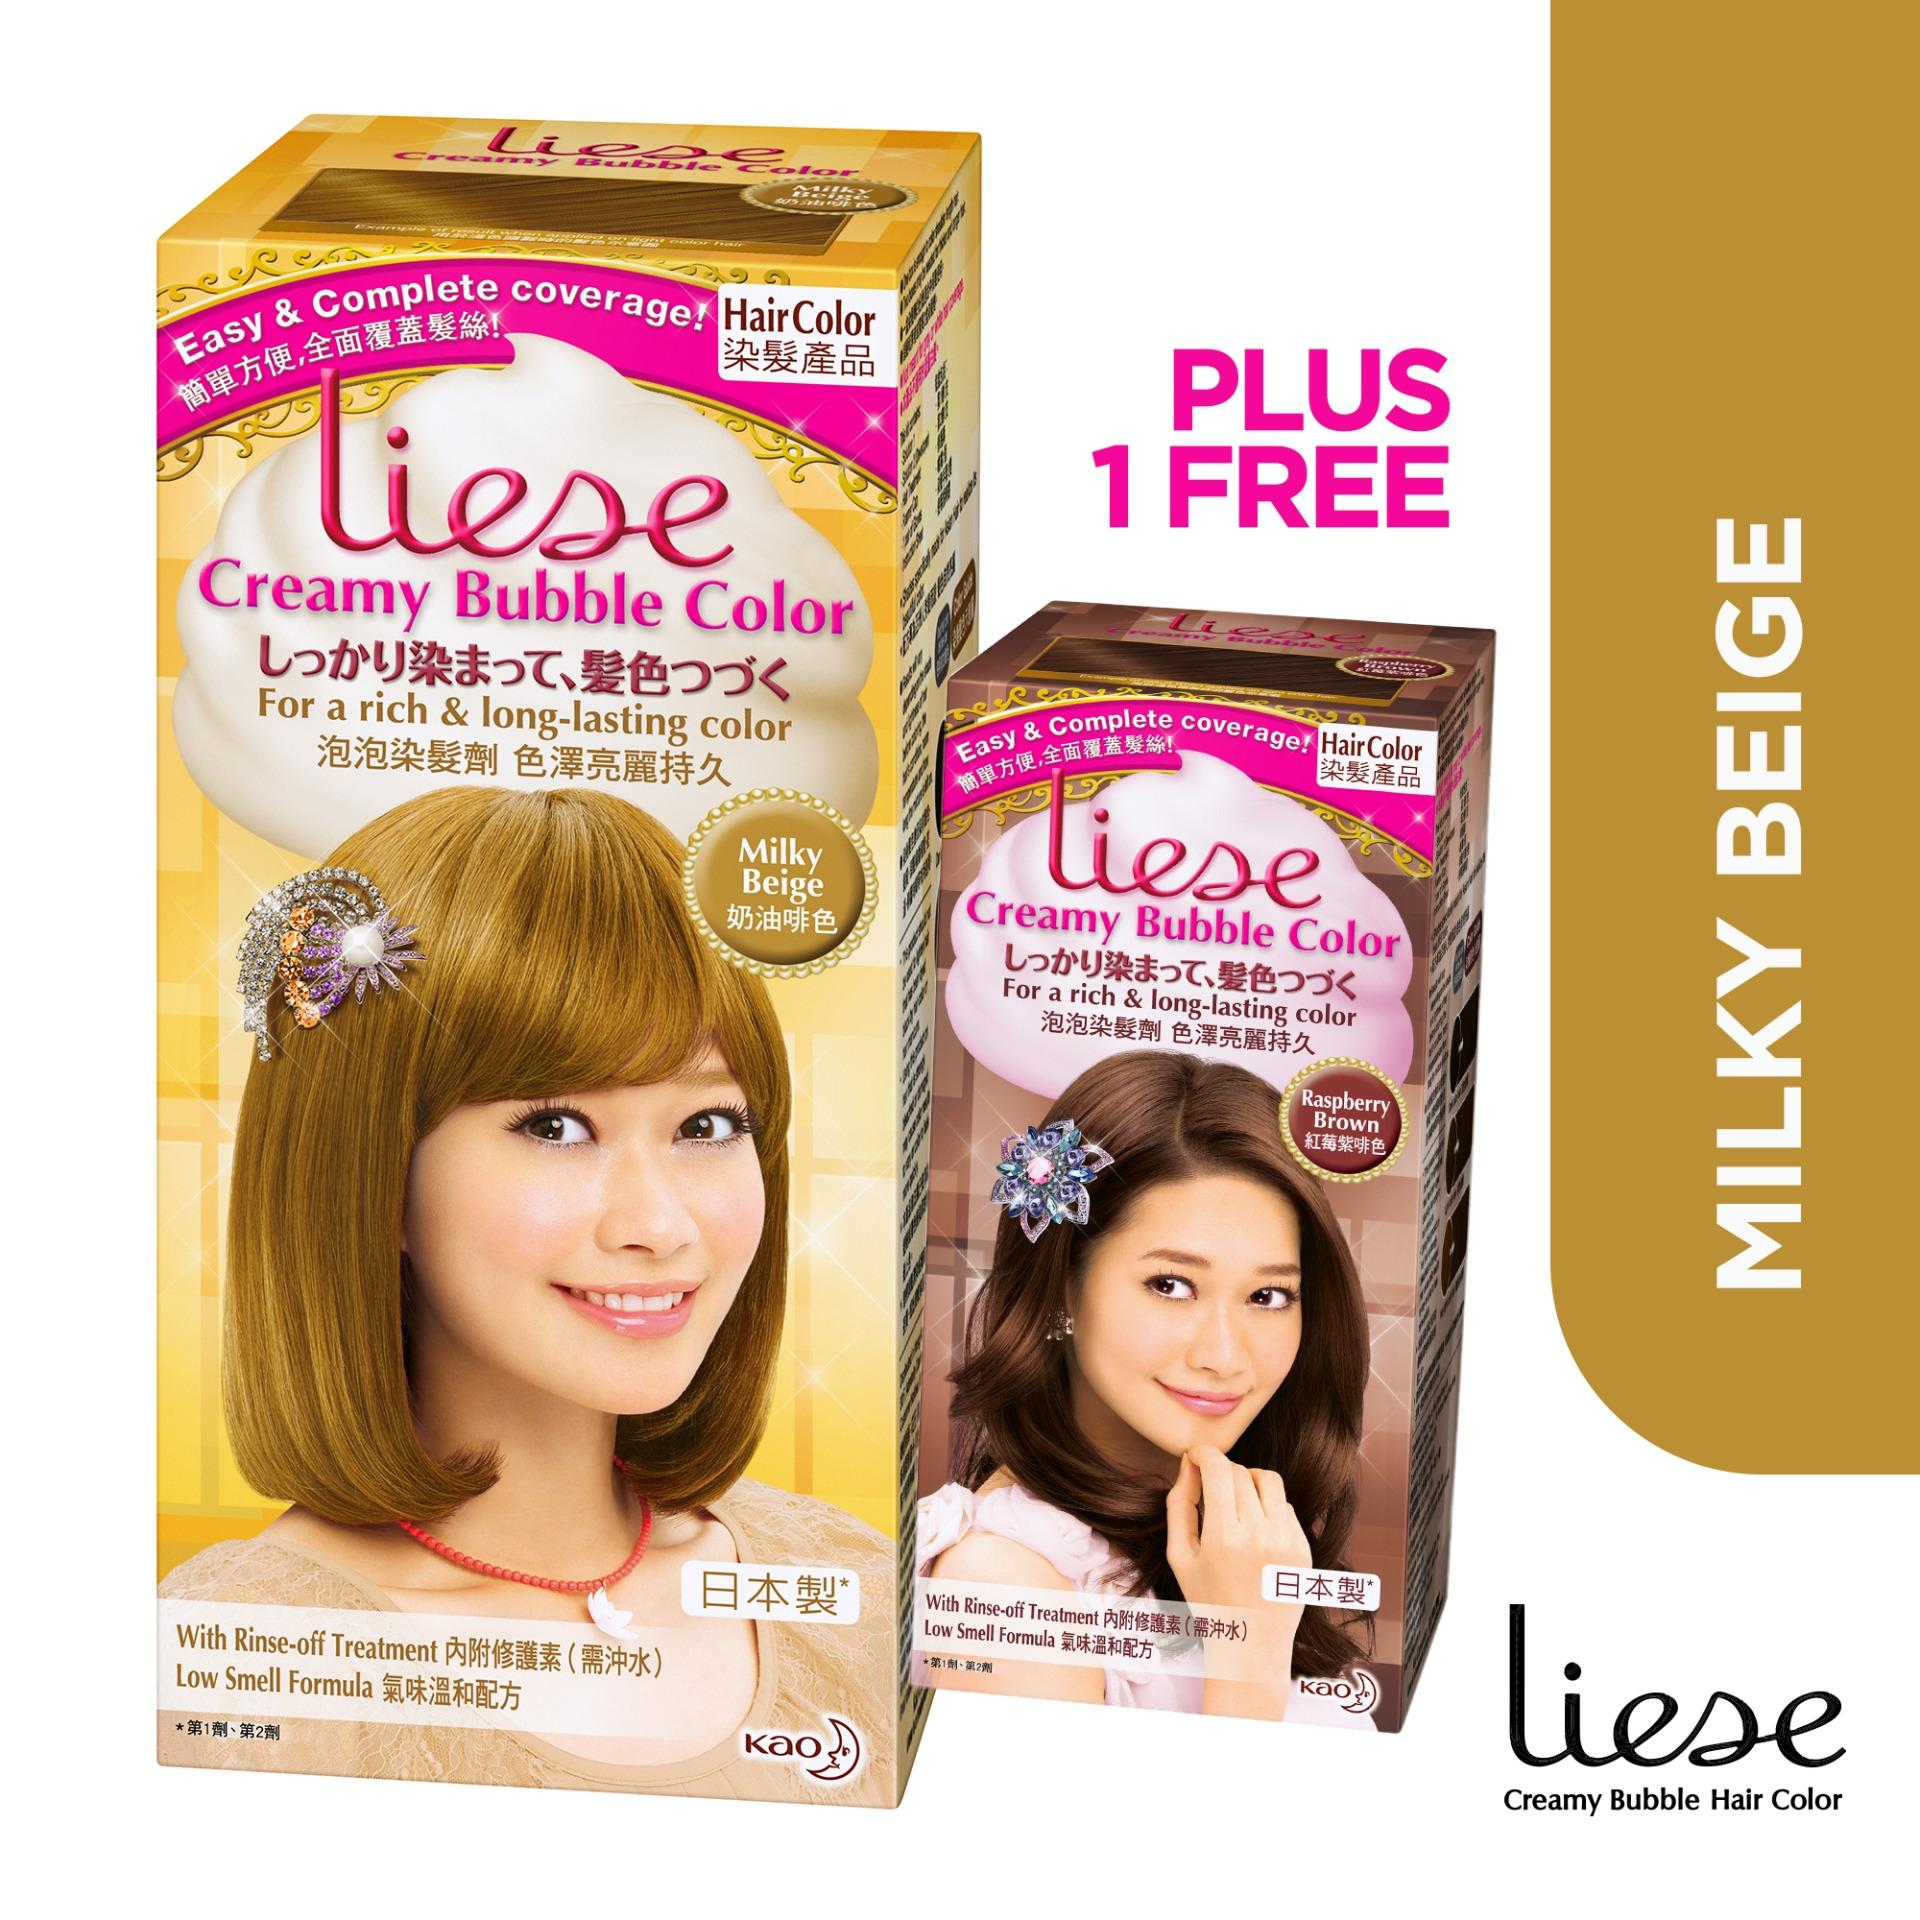 Hair color brands hair dye on sale prices set reviews in liese creamy bubble hair color milky beigeraspberry buy 1 take 1 solutioingenieria Gallery